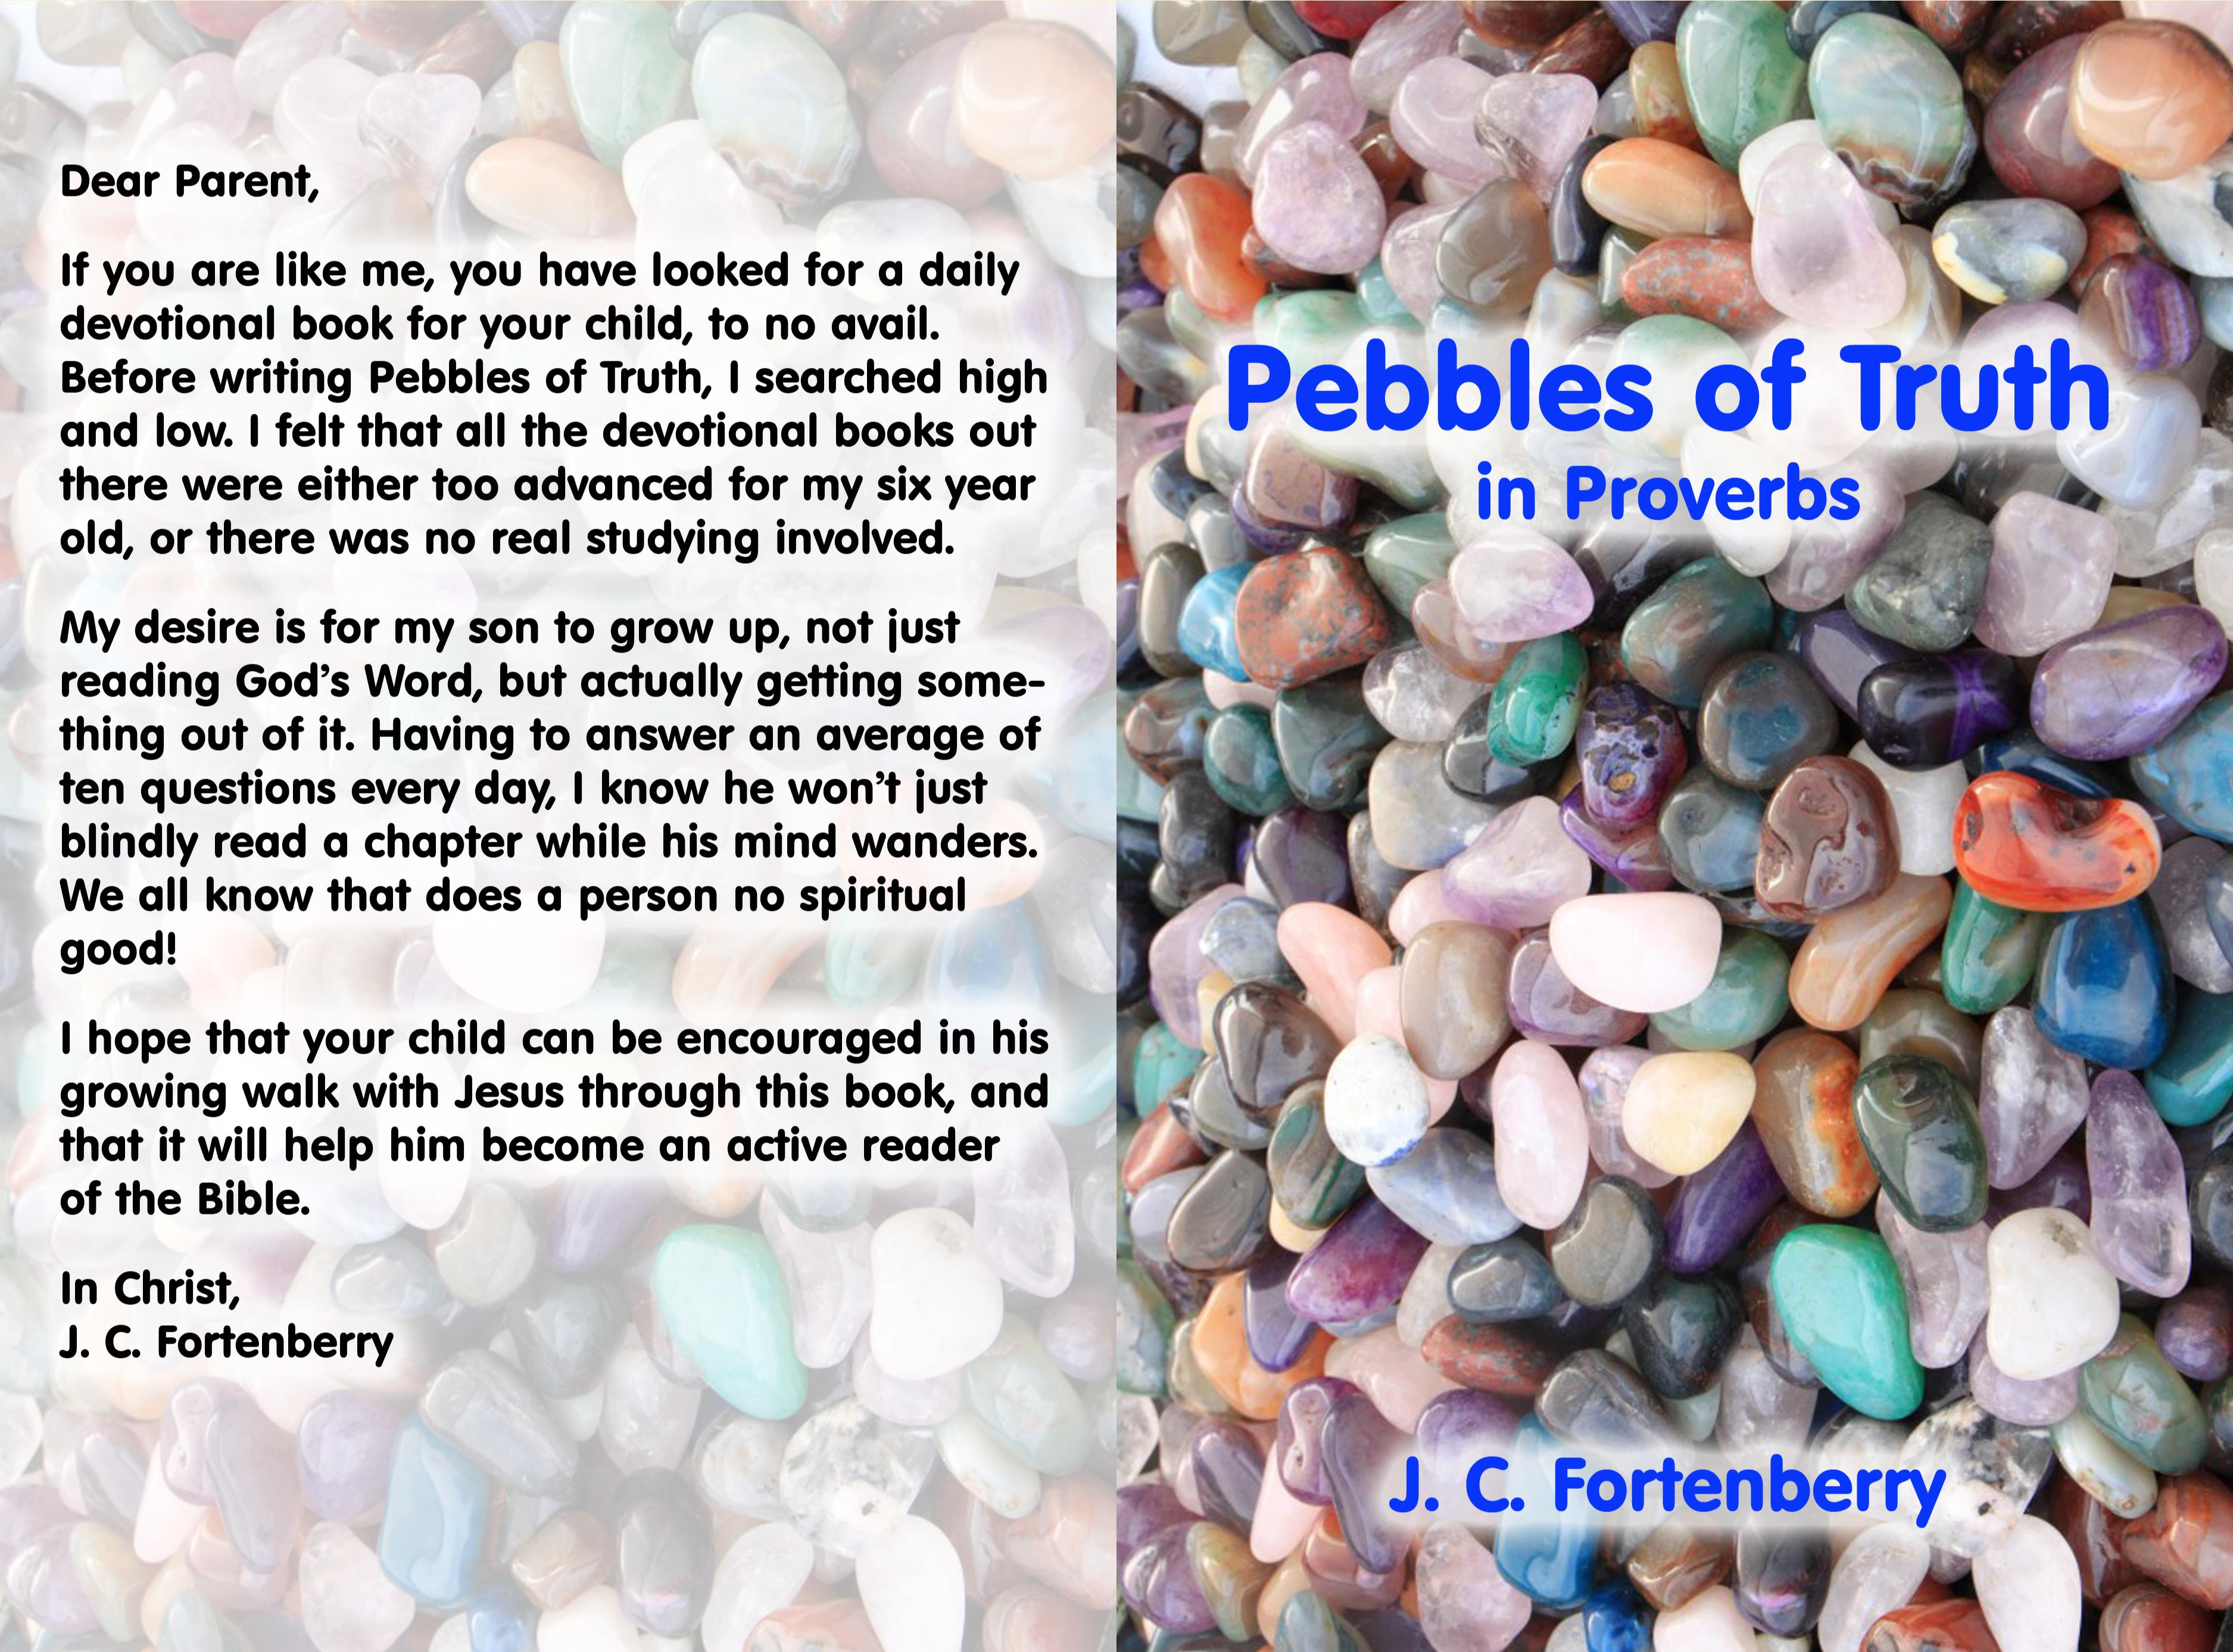 Pebbles of Truth in Proverbs cover image